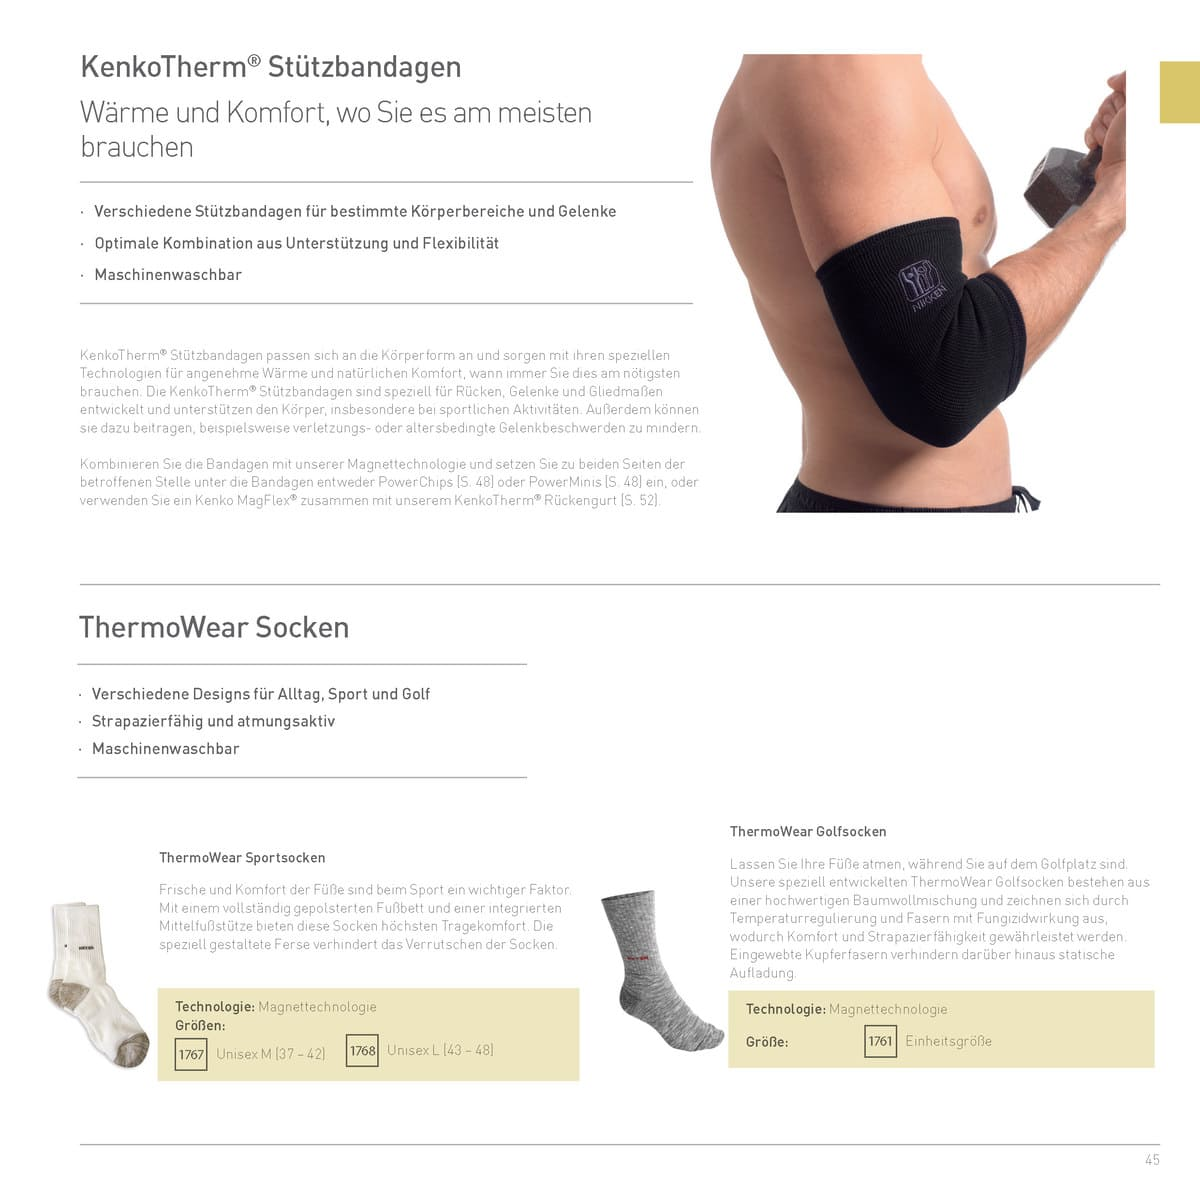 https://wellness-magnete.de/